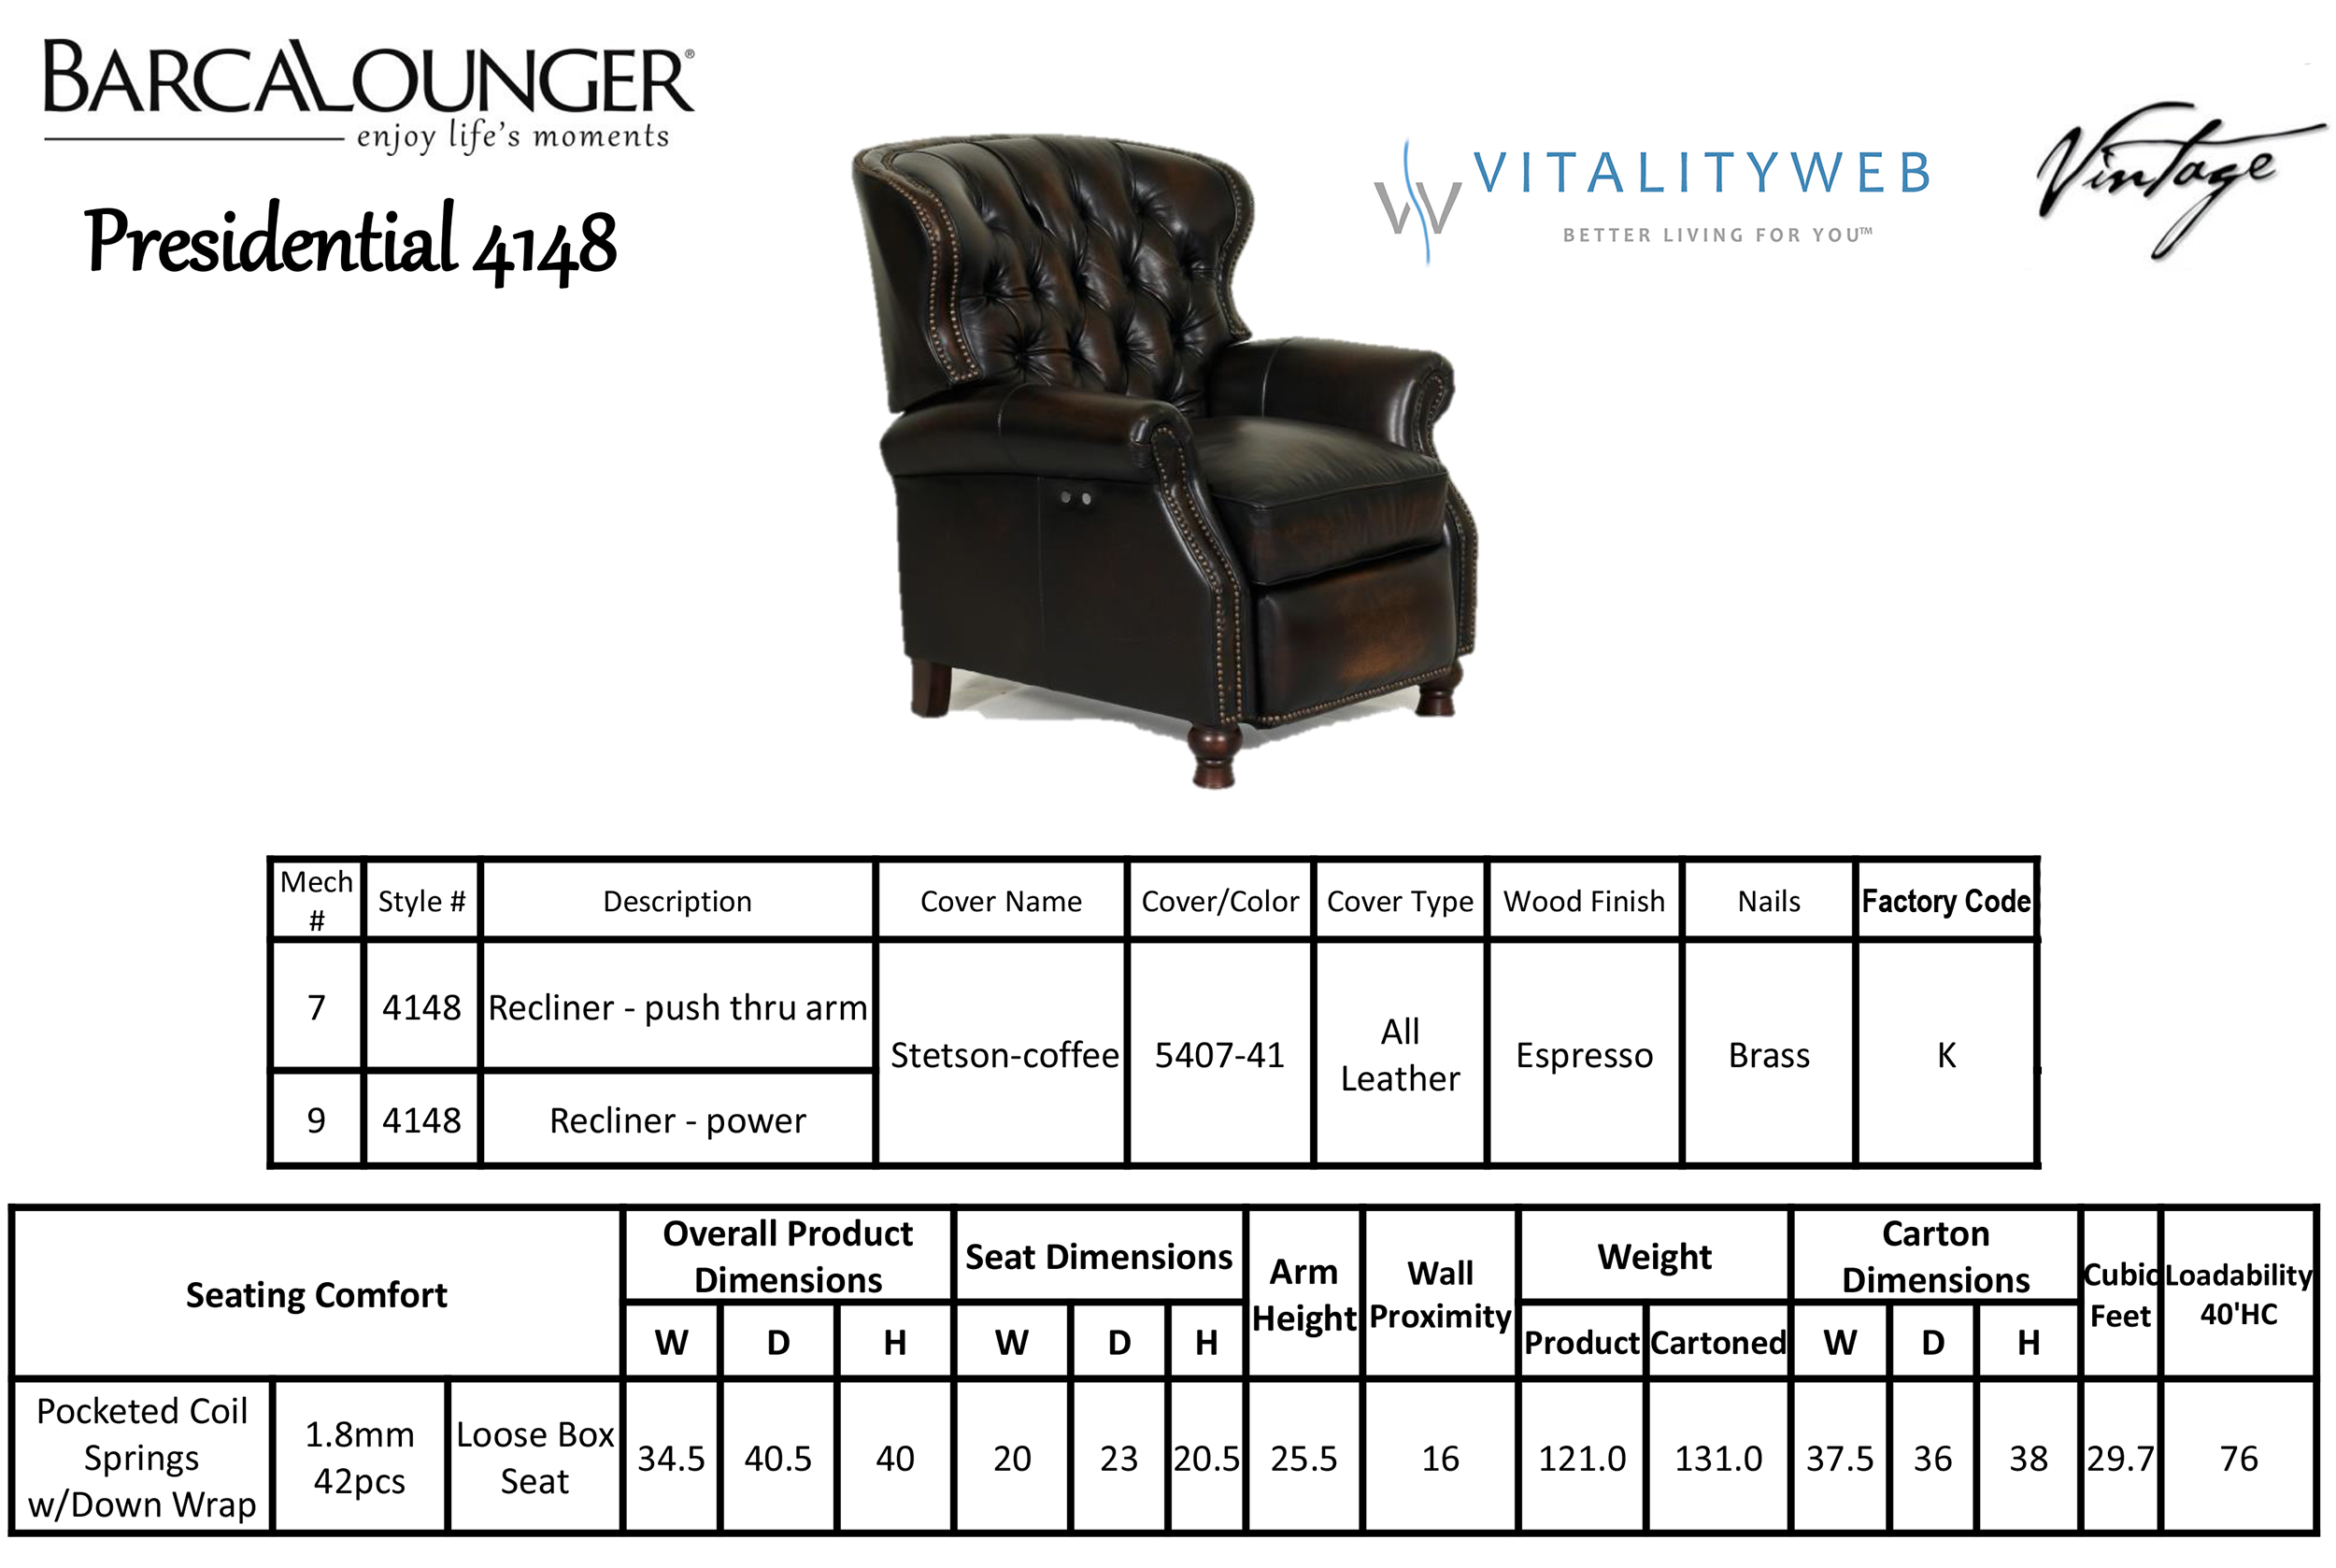 Barcalounger Presidential II 4148 Leather Recliner Chair Dimensions